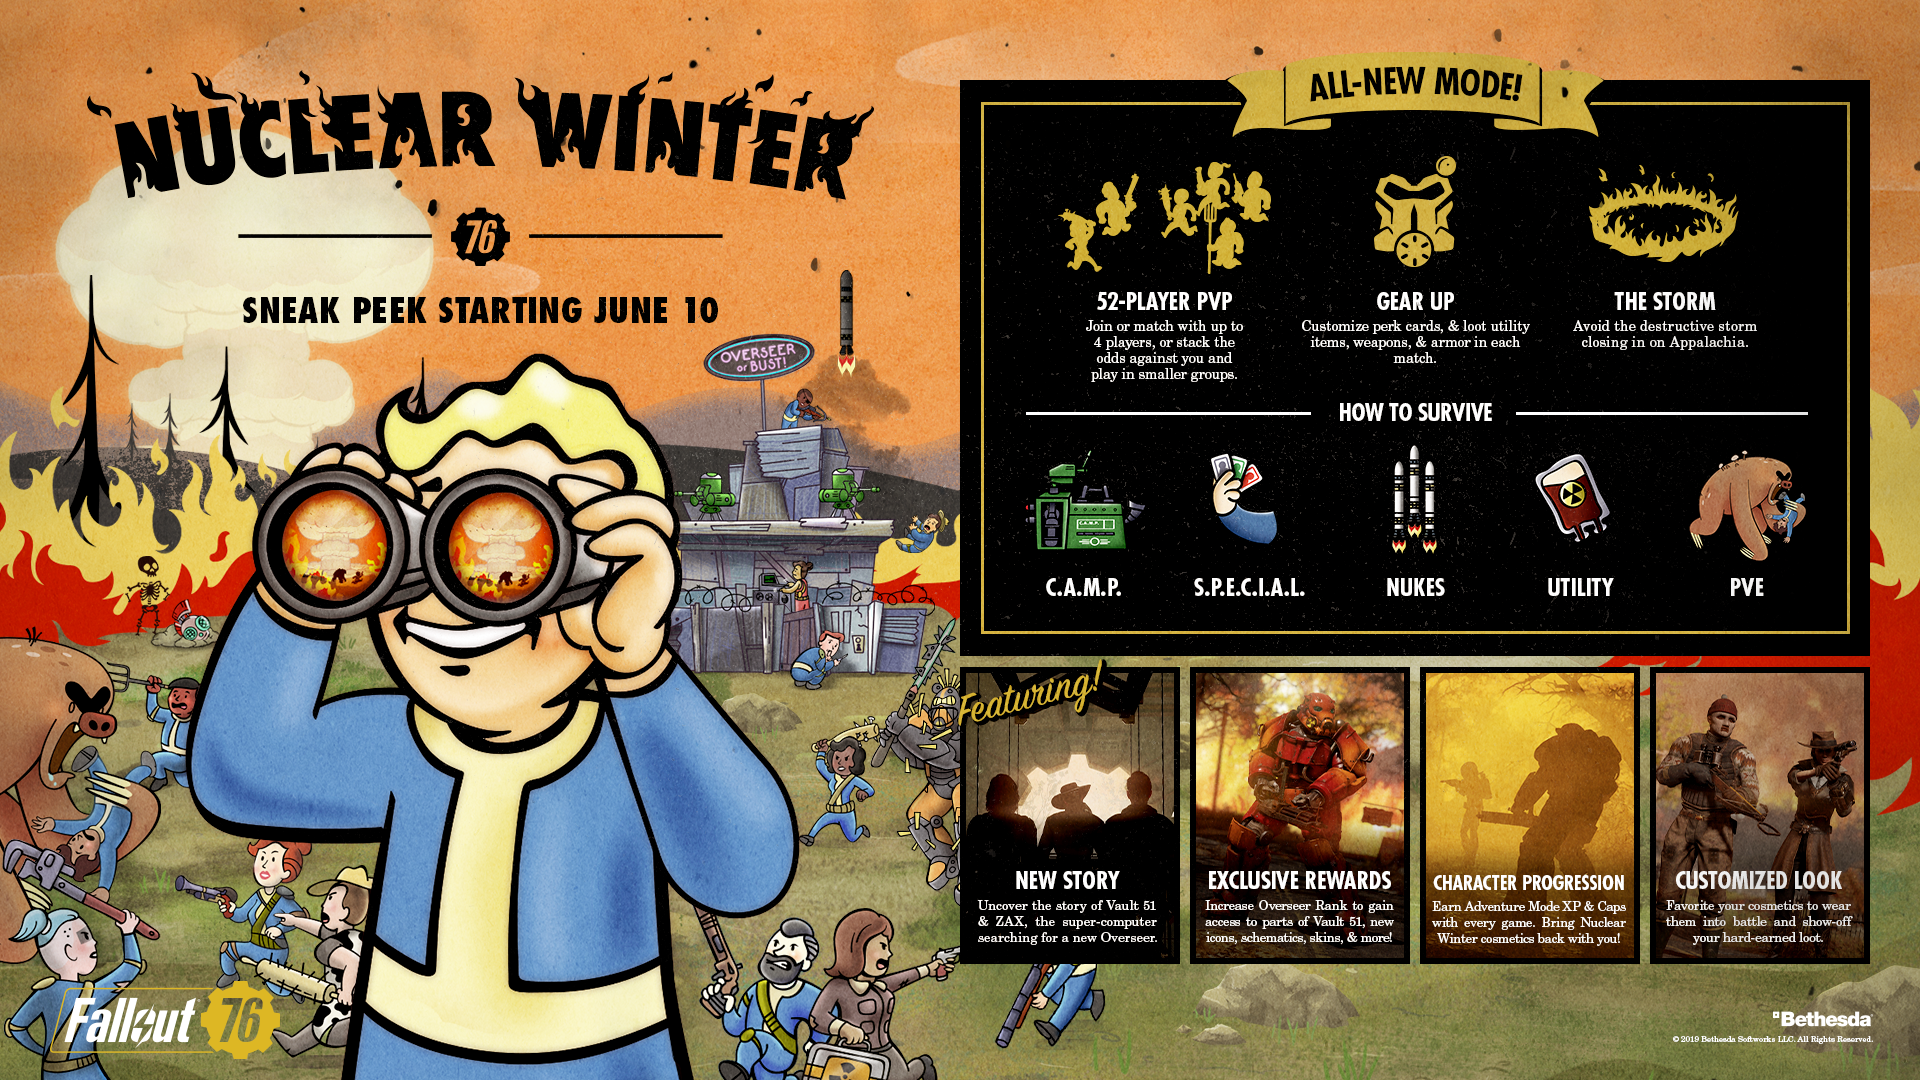 Fallout 76 Fallout 76 Nuclear Winter Is Here